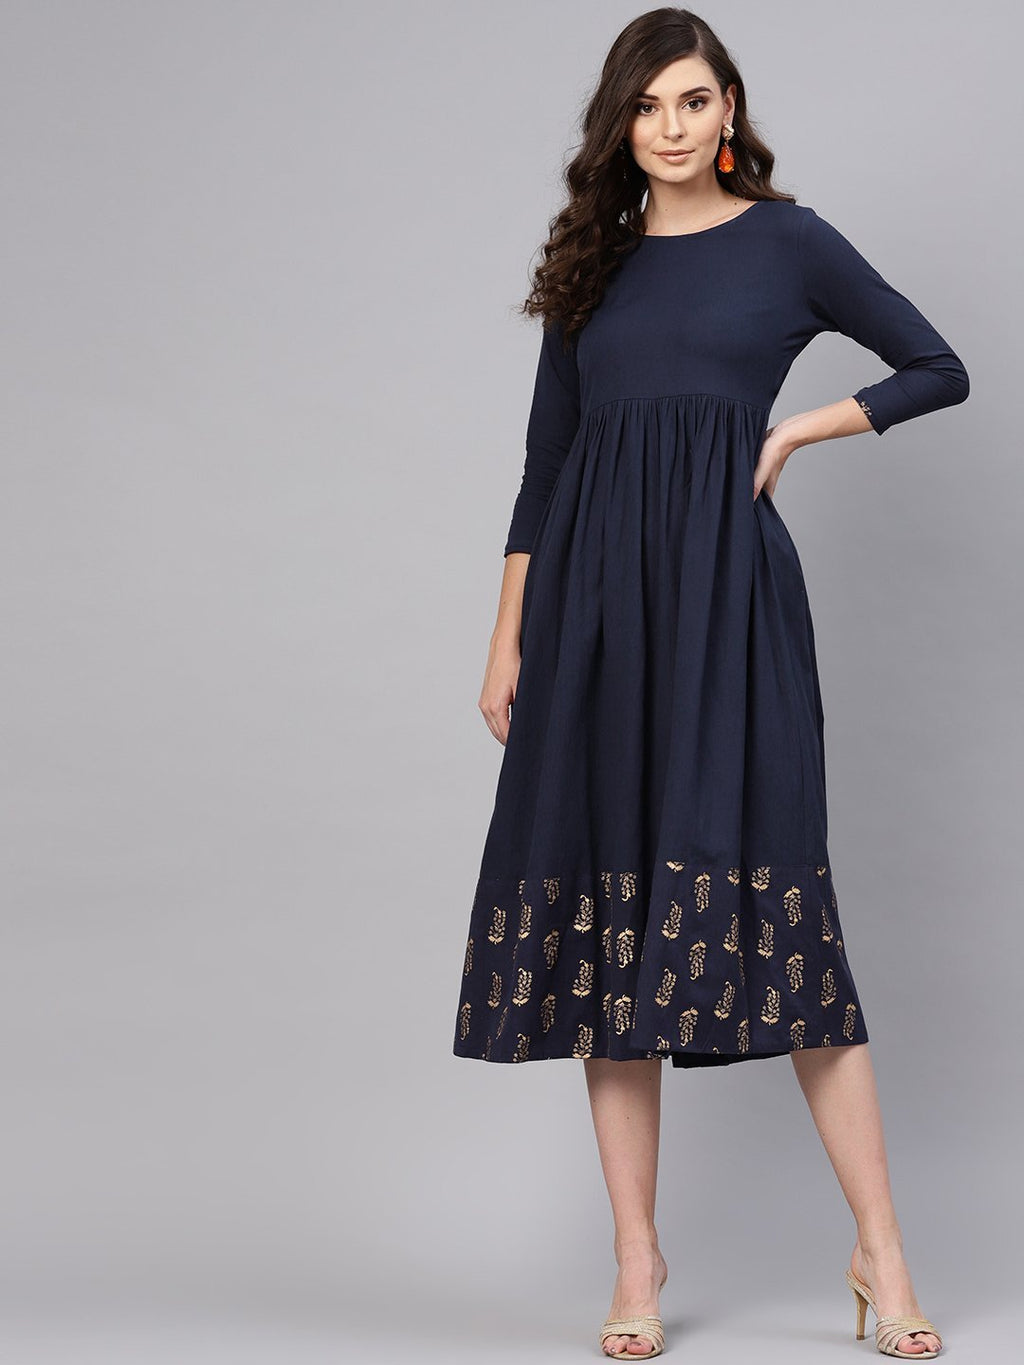 Navy Foil Printed Gathered Dress